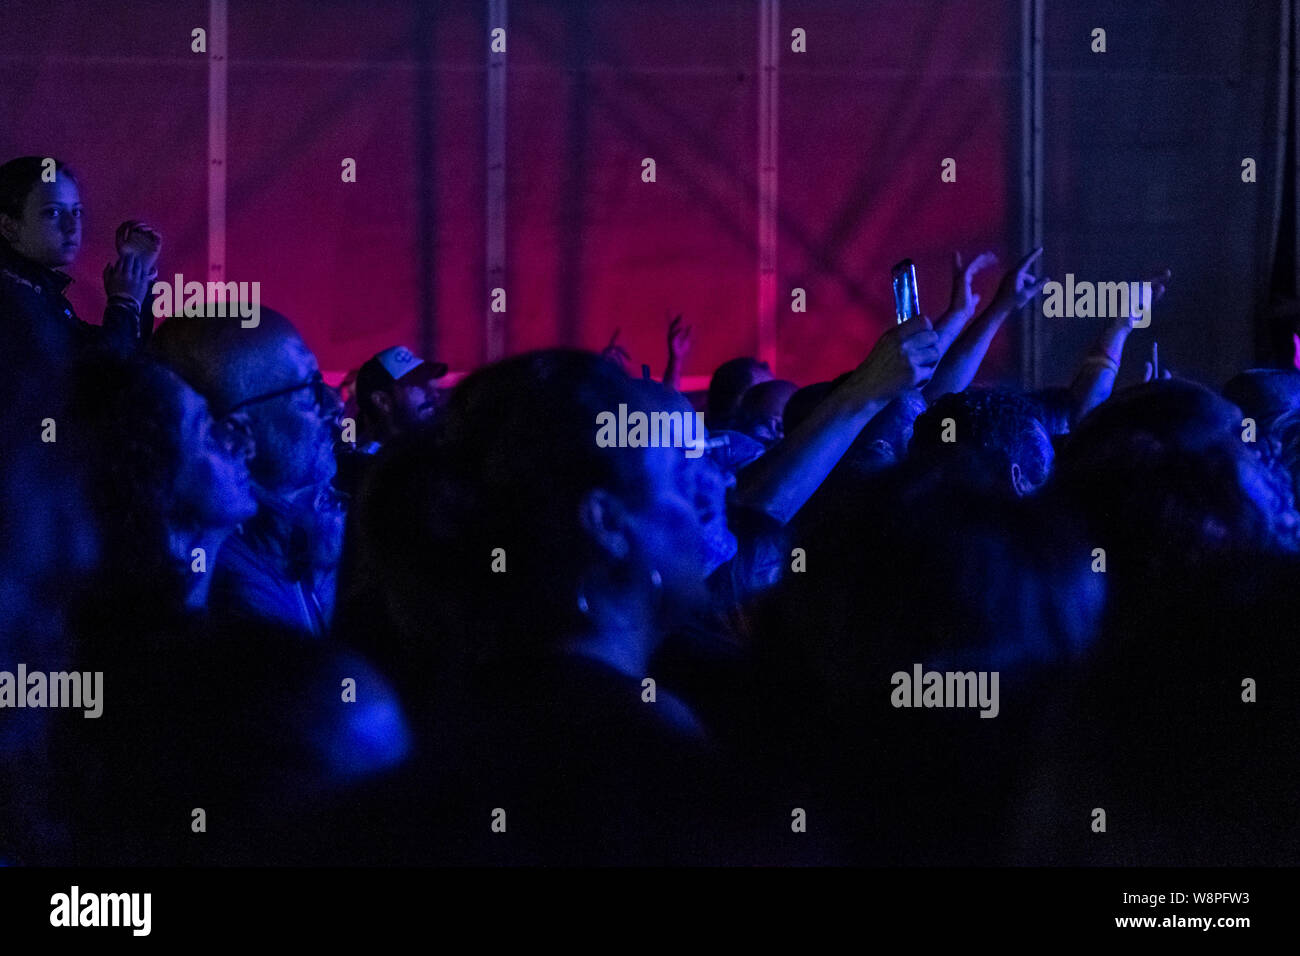 "Italian singer and songwriter Luca Carboni, performs live on stage at Cantina dei Colli Ripani in Ripatransone during his ""Sputnik Tour 2019"". Stock Photo"